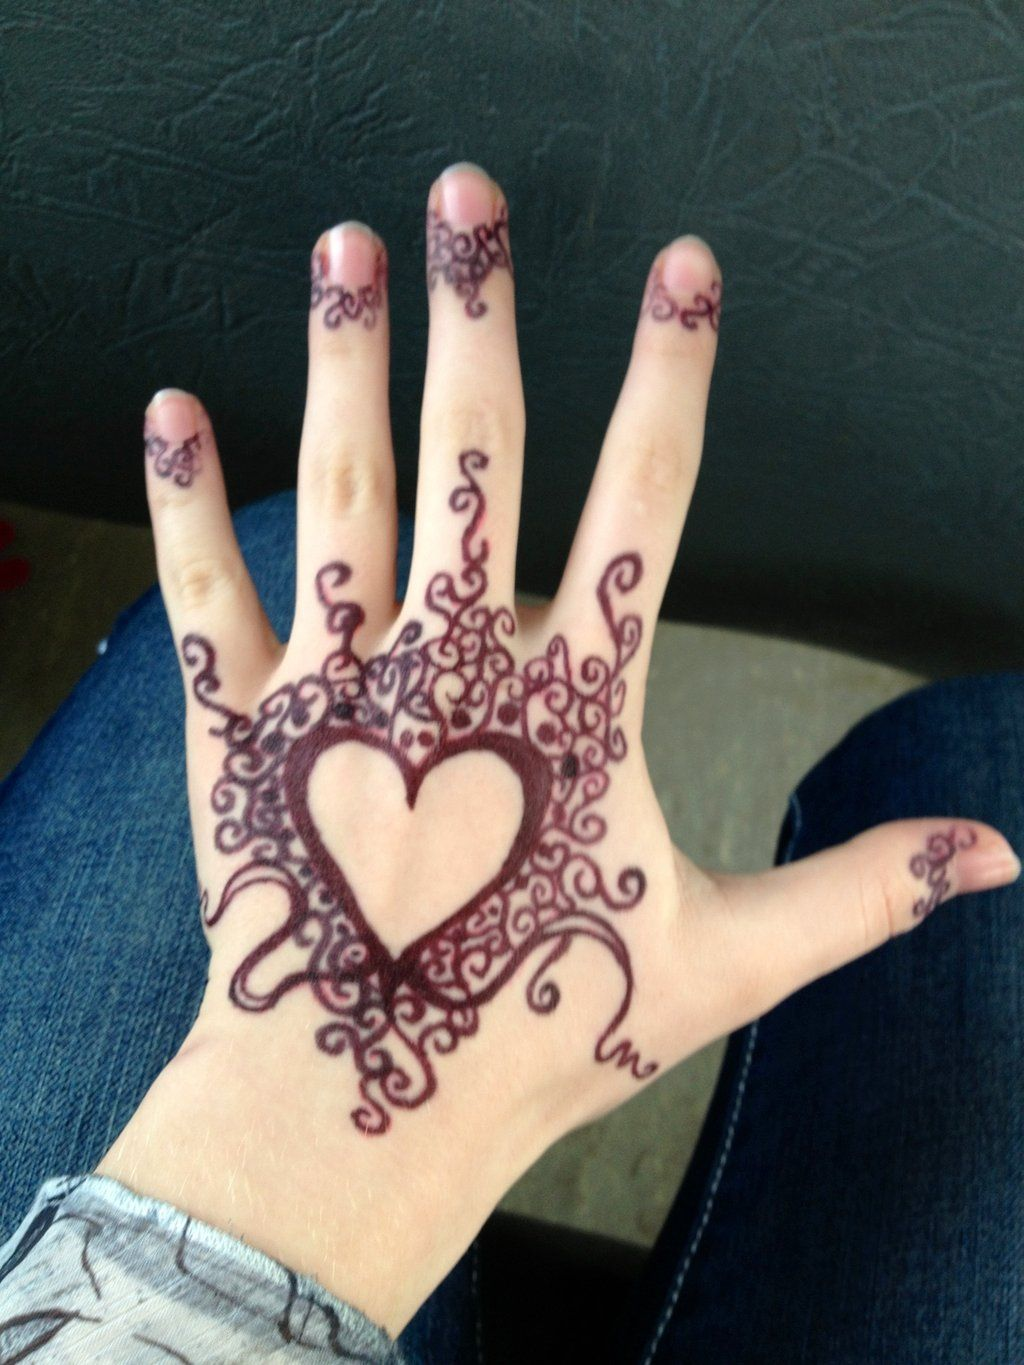 Simple Hand Tattoos For Girls Tumblr 1000 Images About Tattoos On Sharpie Designs Simple Hand Tattoos Sharpie Tattoos